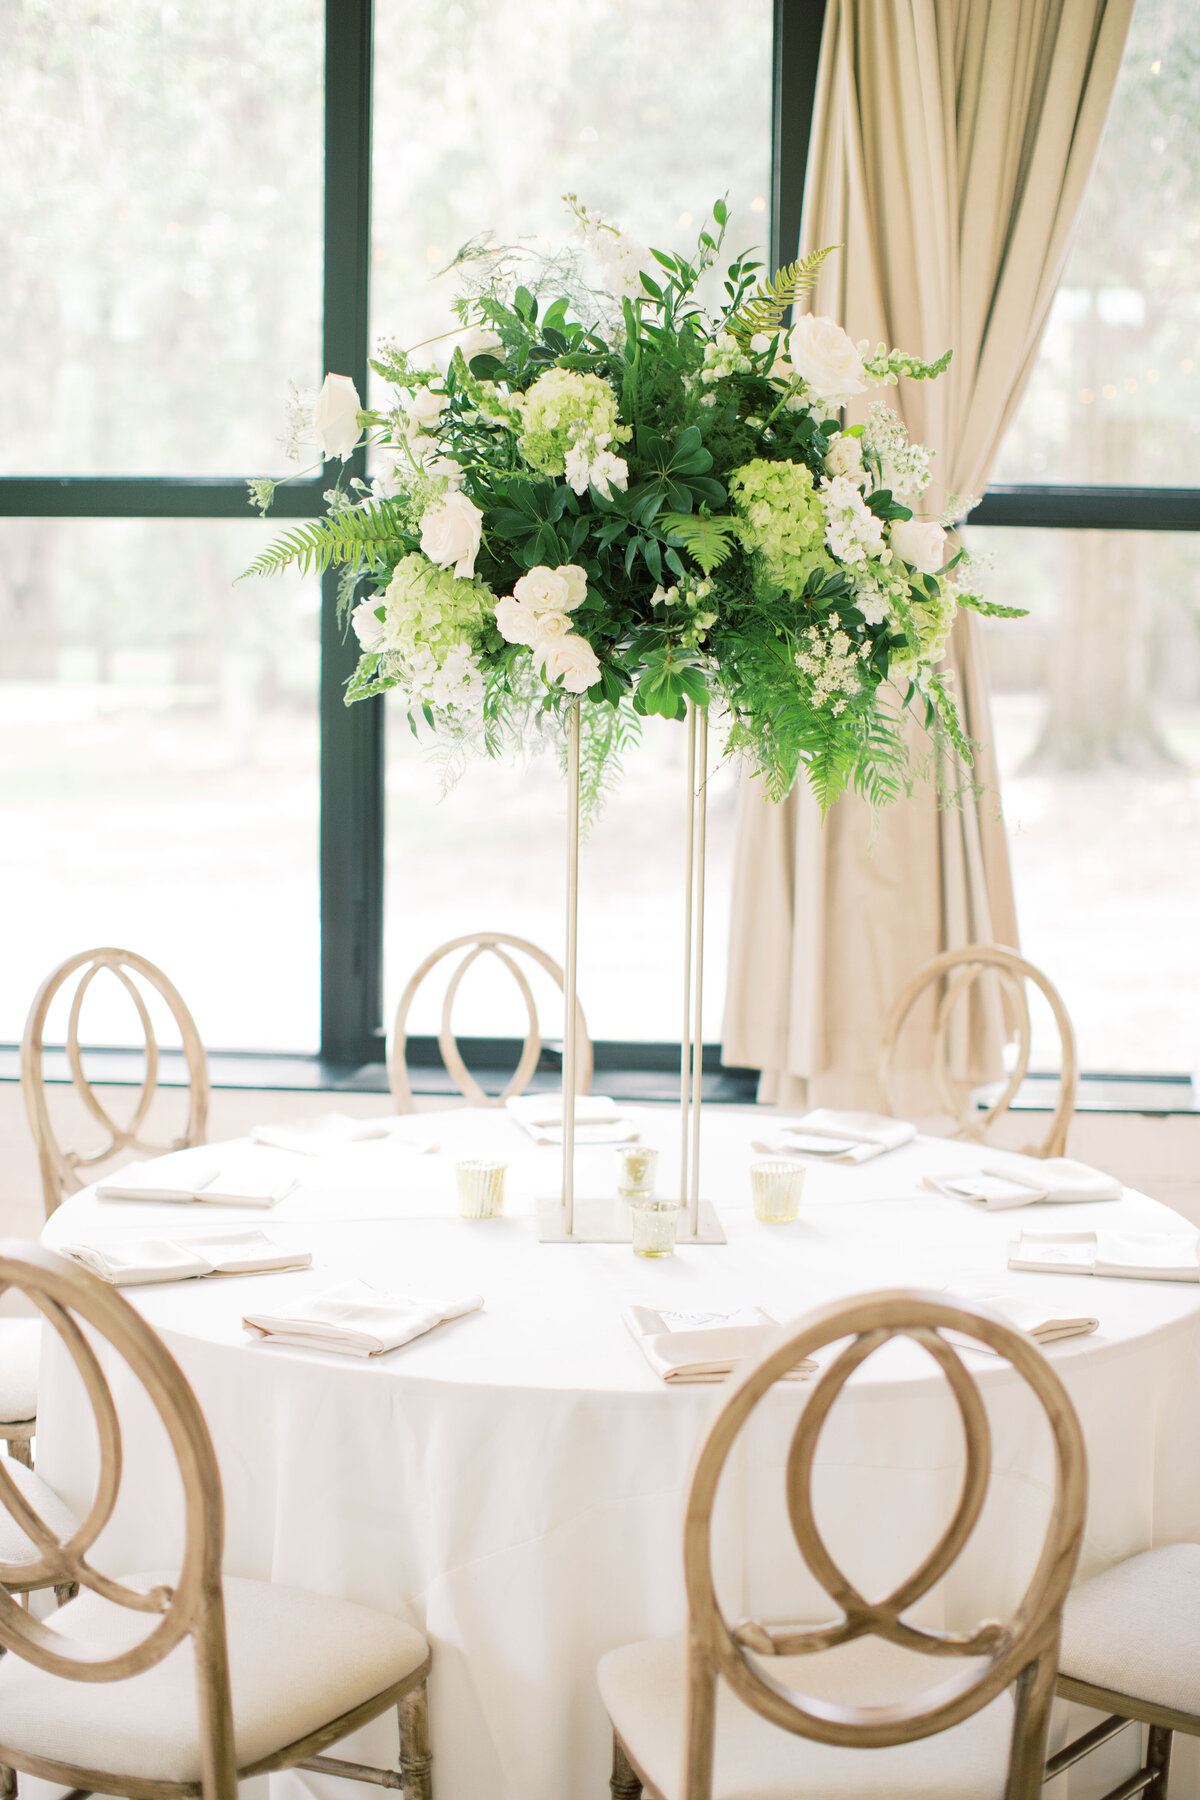 Melton_Wedding__Middleton_Place_Plantation_Charleston_South_Carolina_Jacksonville_Florida_Devon_Donnahoo_Photography__0422